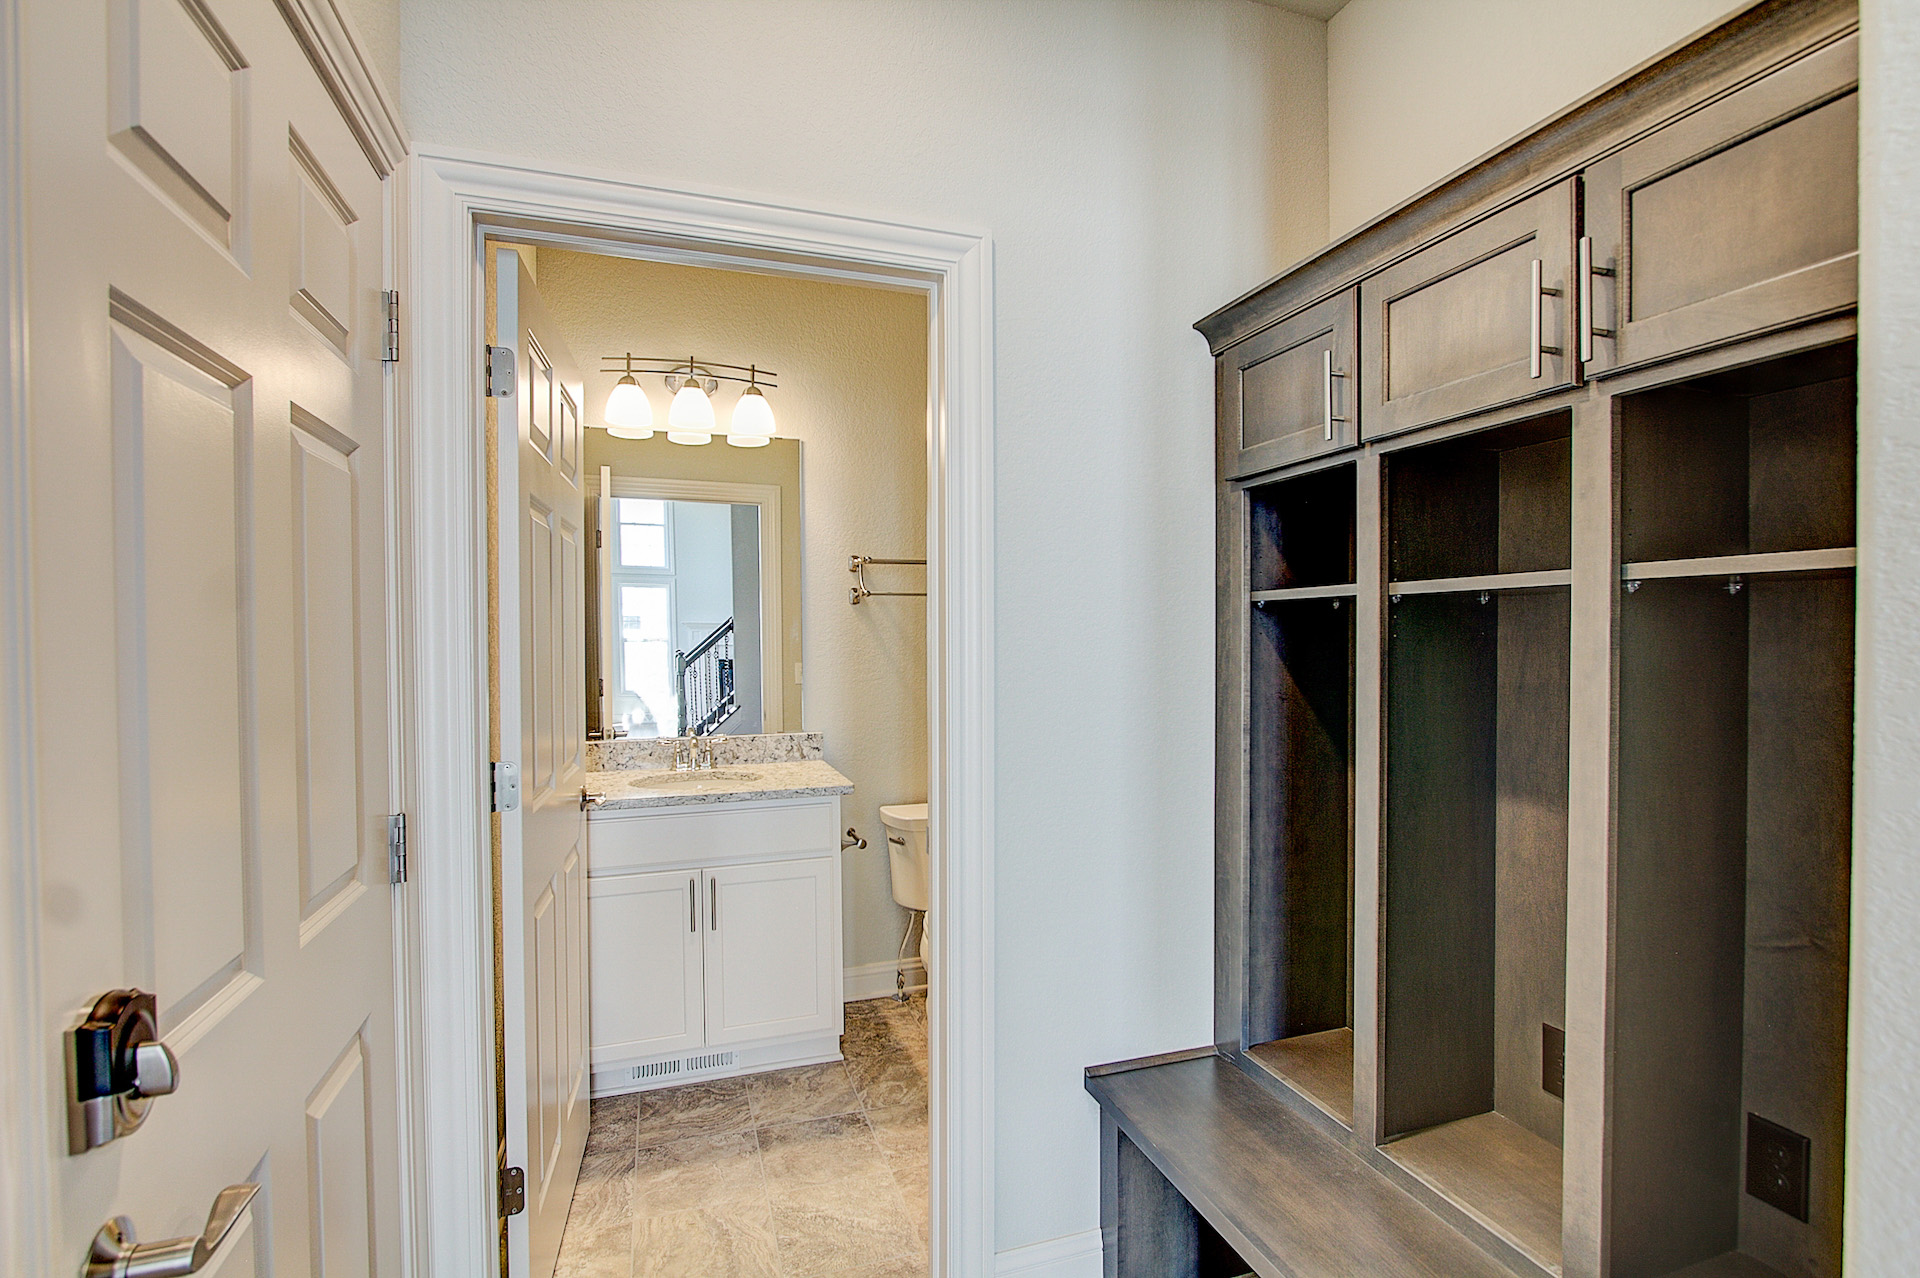 View from Mudroom Boot Bench into Bathroom